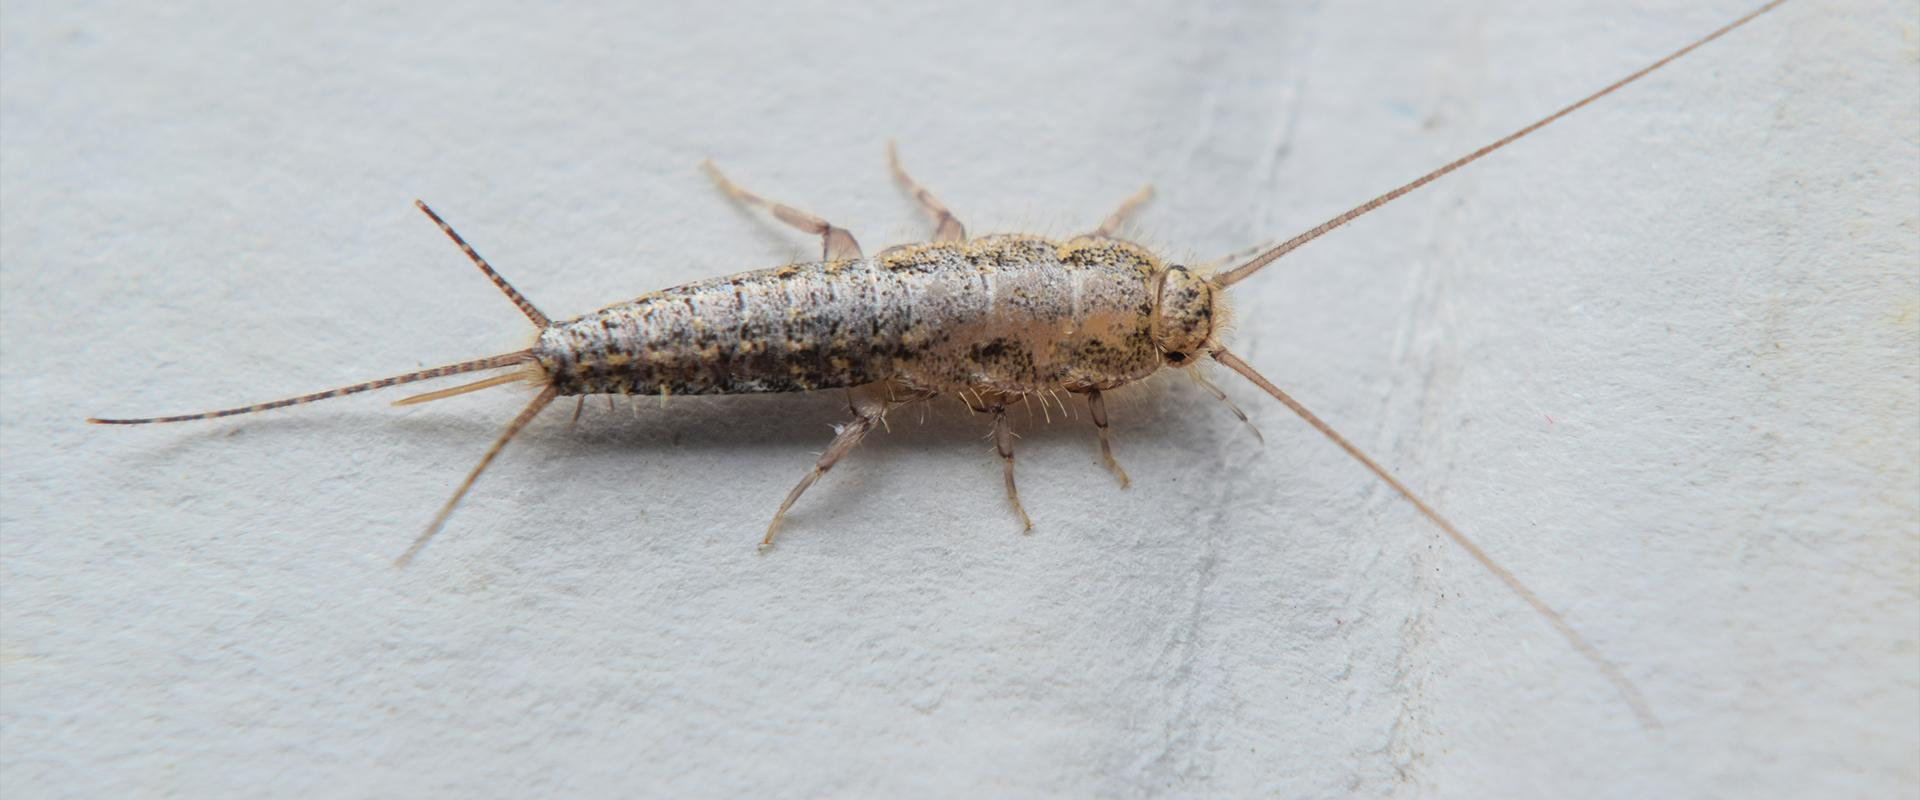 a close up of a silverfish